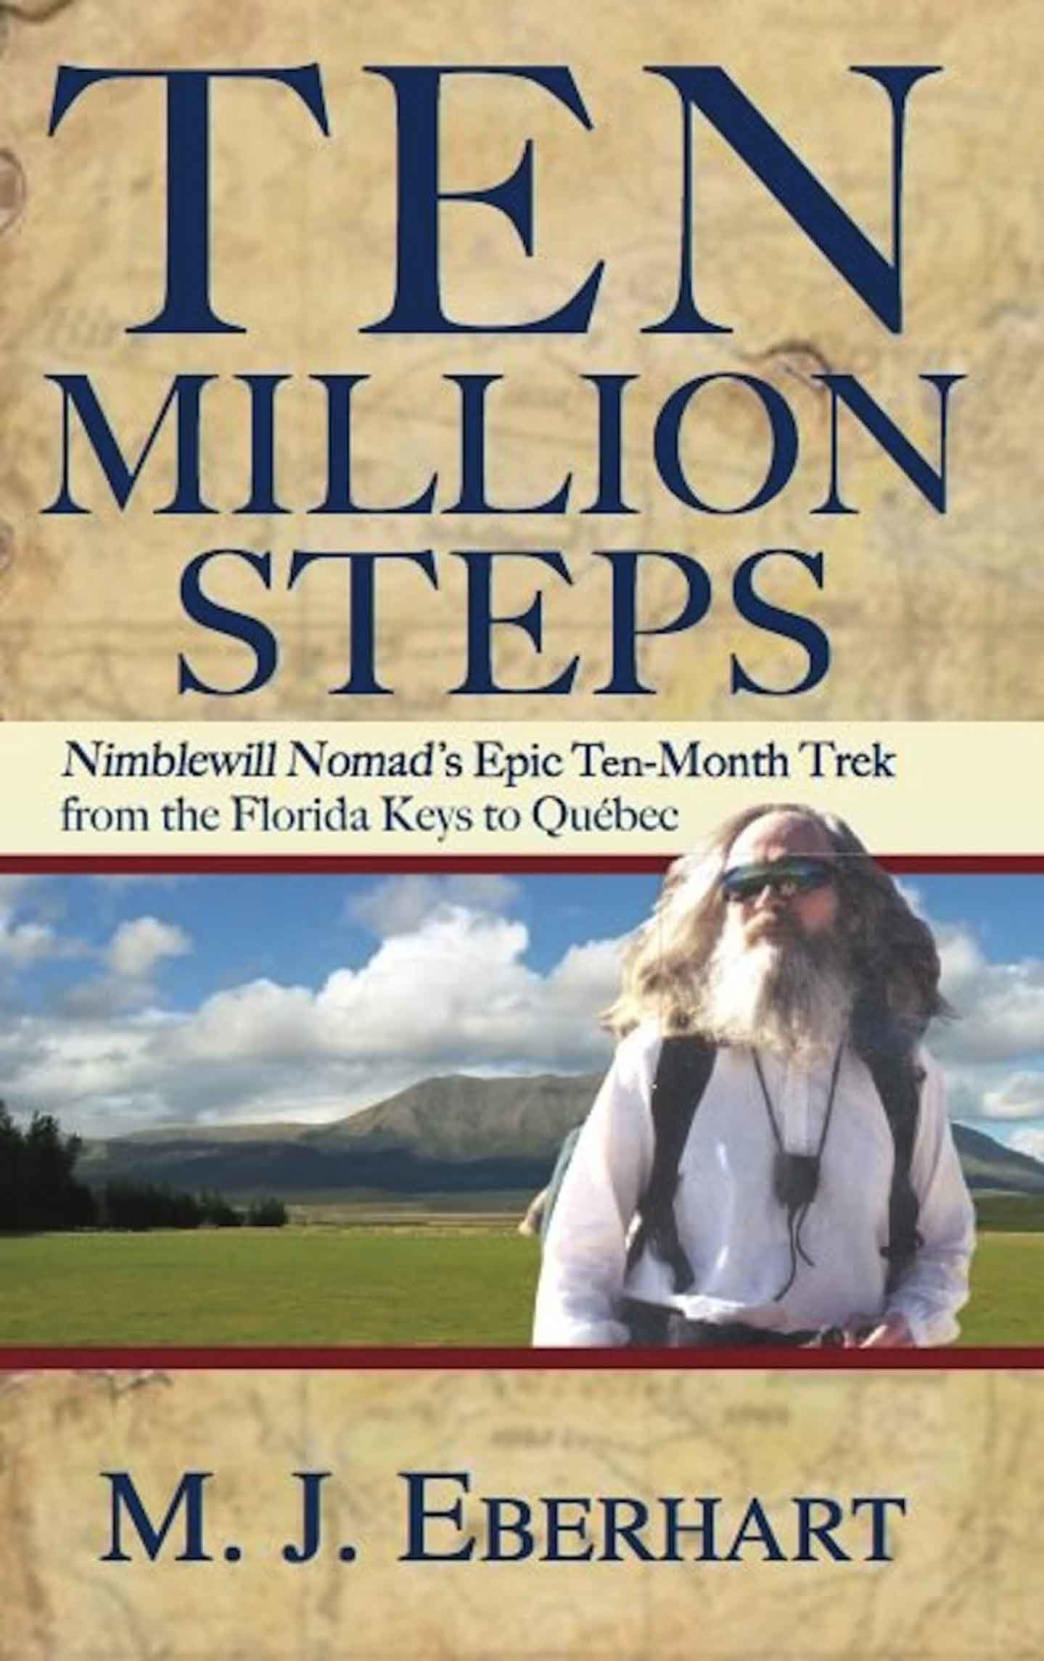 Eberhart's first book, Ten Million Steps, about his first hike from Key West, Florida, to Canada, is available at Menasha Ridge Press.